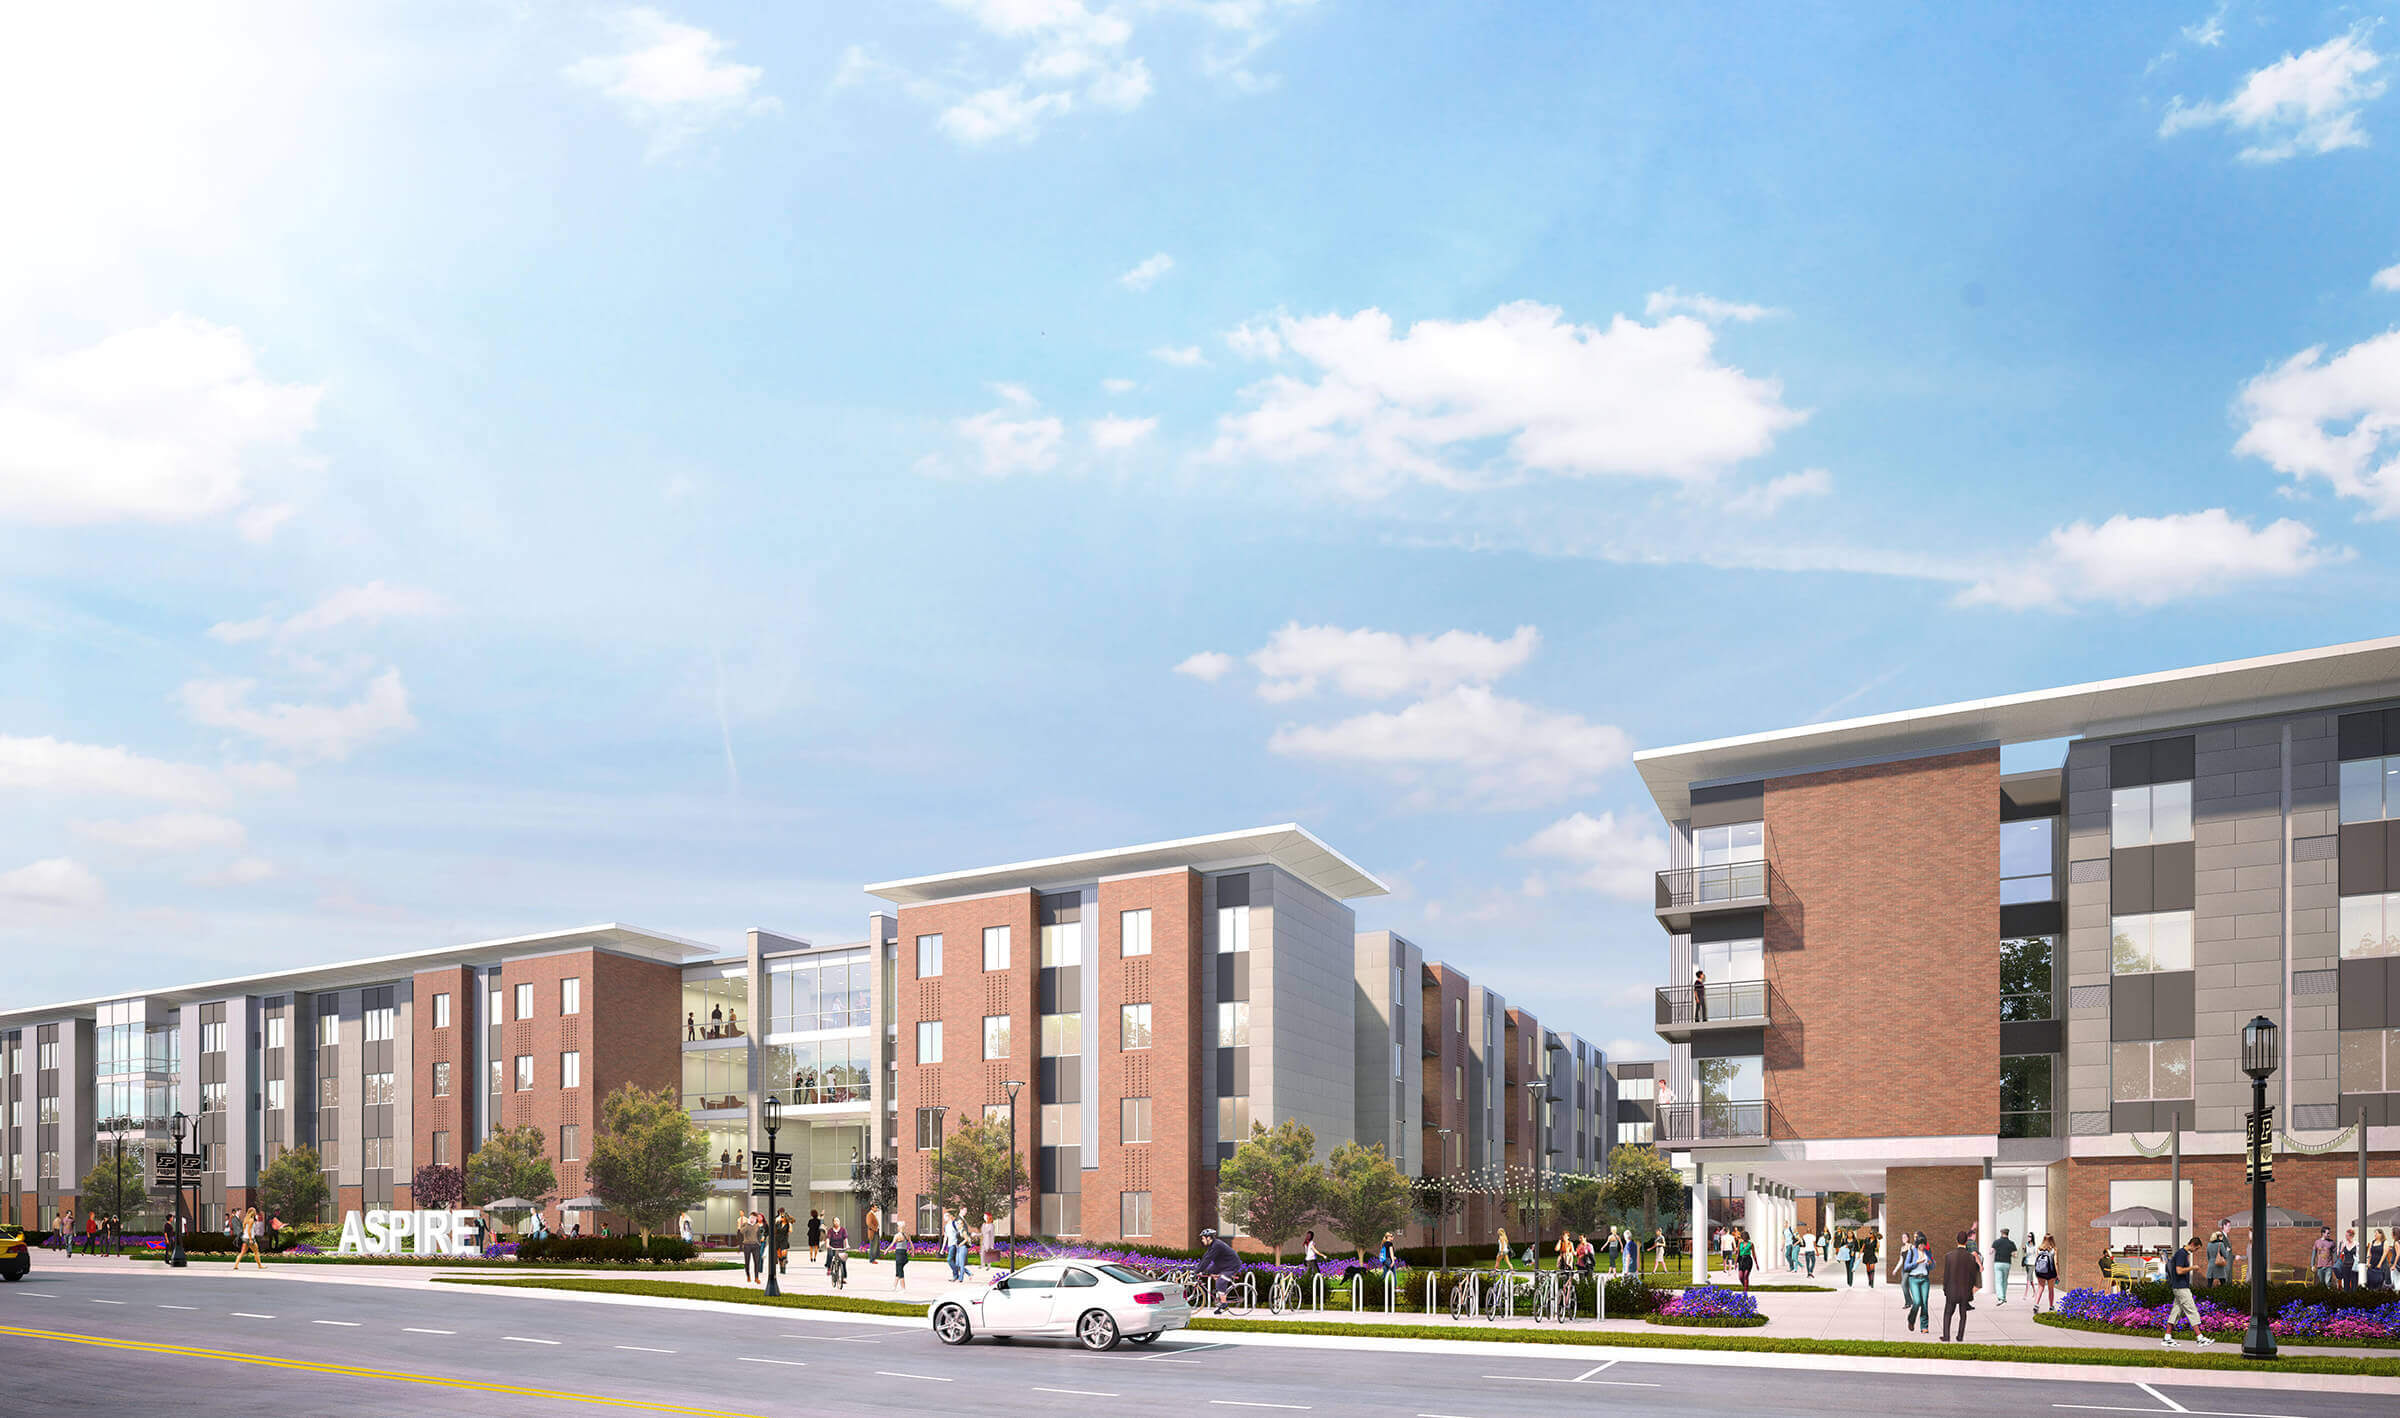 Construction Of 86 Million 835 Bed Apartment Complex To Begin In Purdue West Side Development District